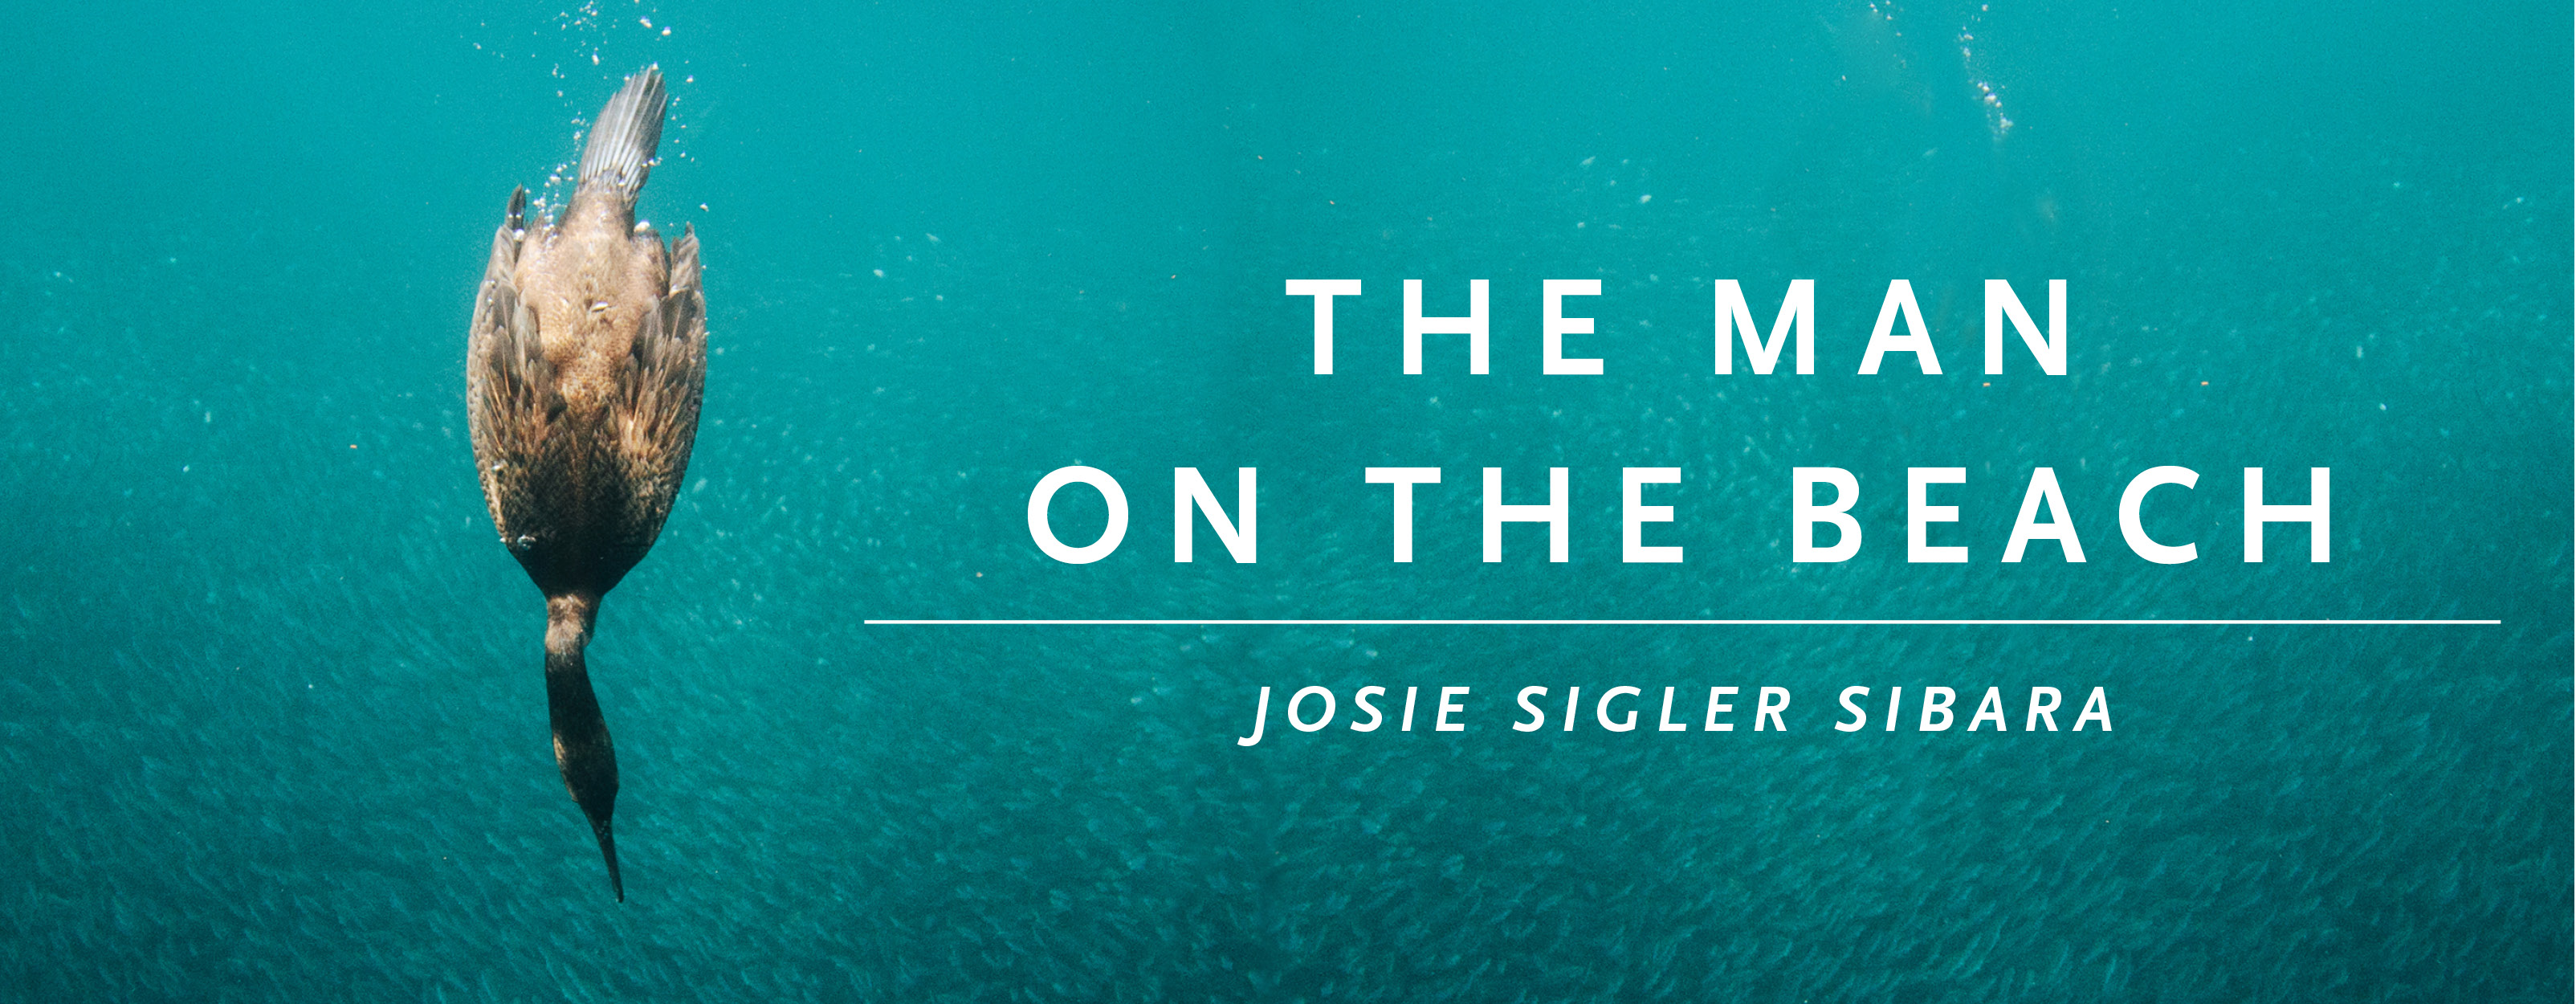 """Image of a duck diving down in water with the text """"The Man on the Beach by Josie Sigler Sibara"""""""